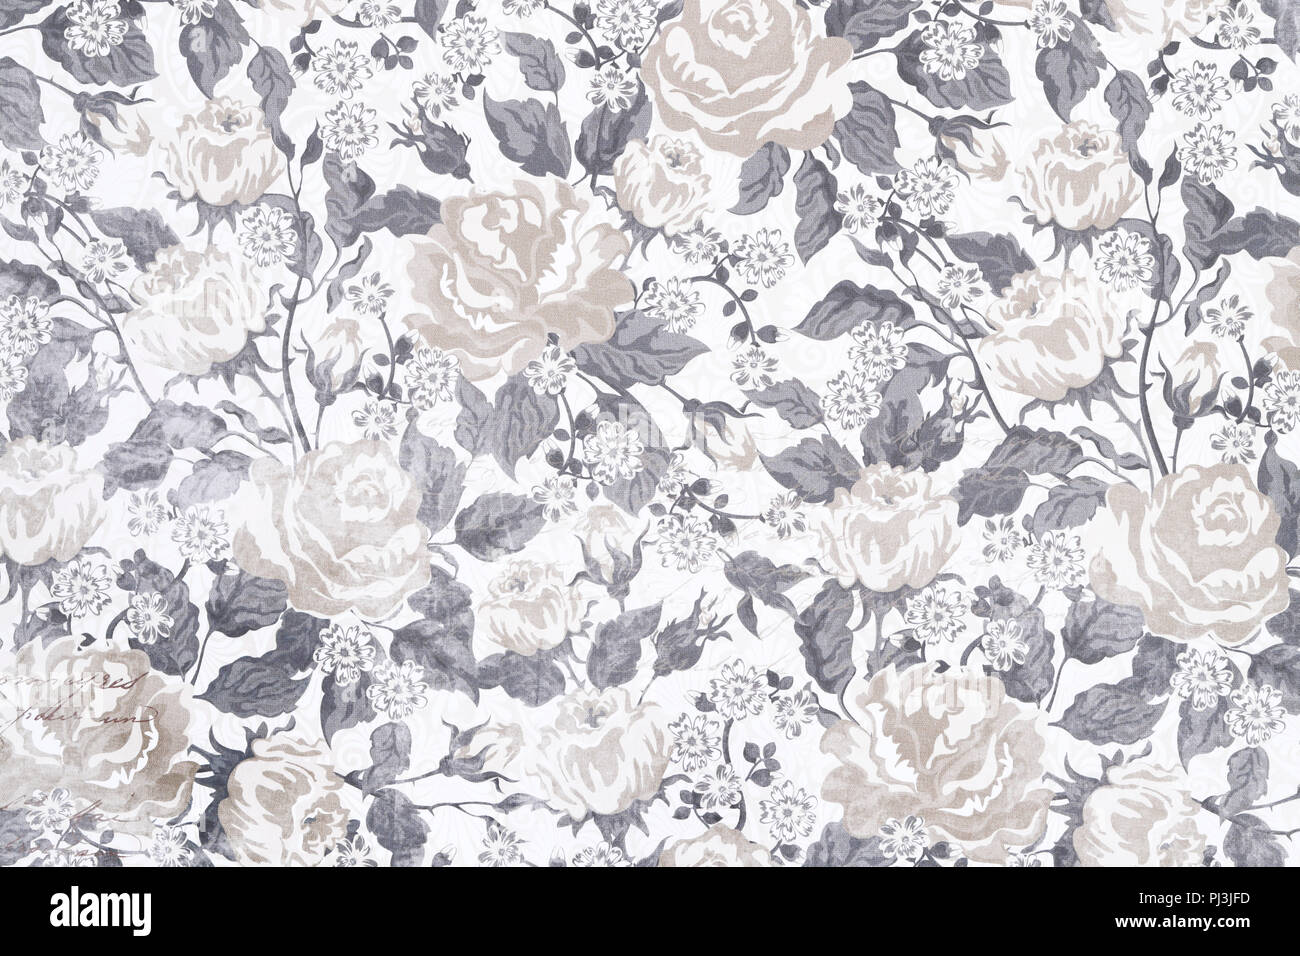 Floral Vintage Seamless Pattern Background Wallpaper With Pastel